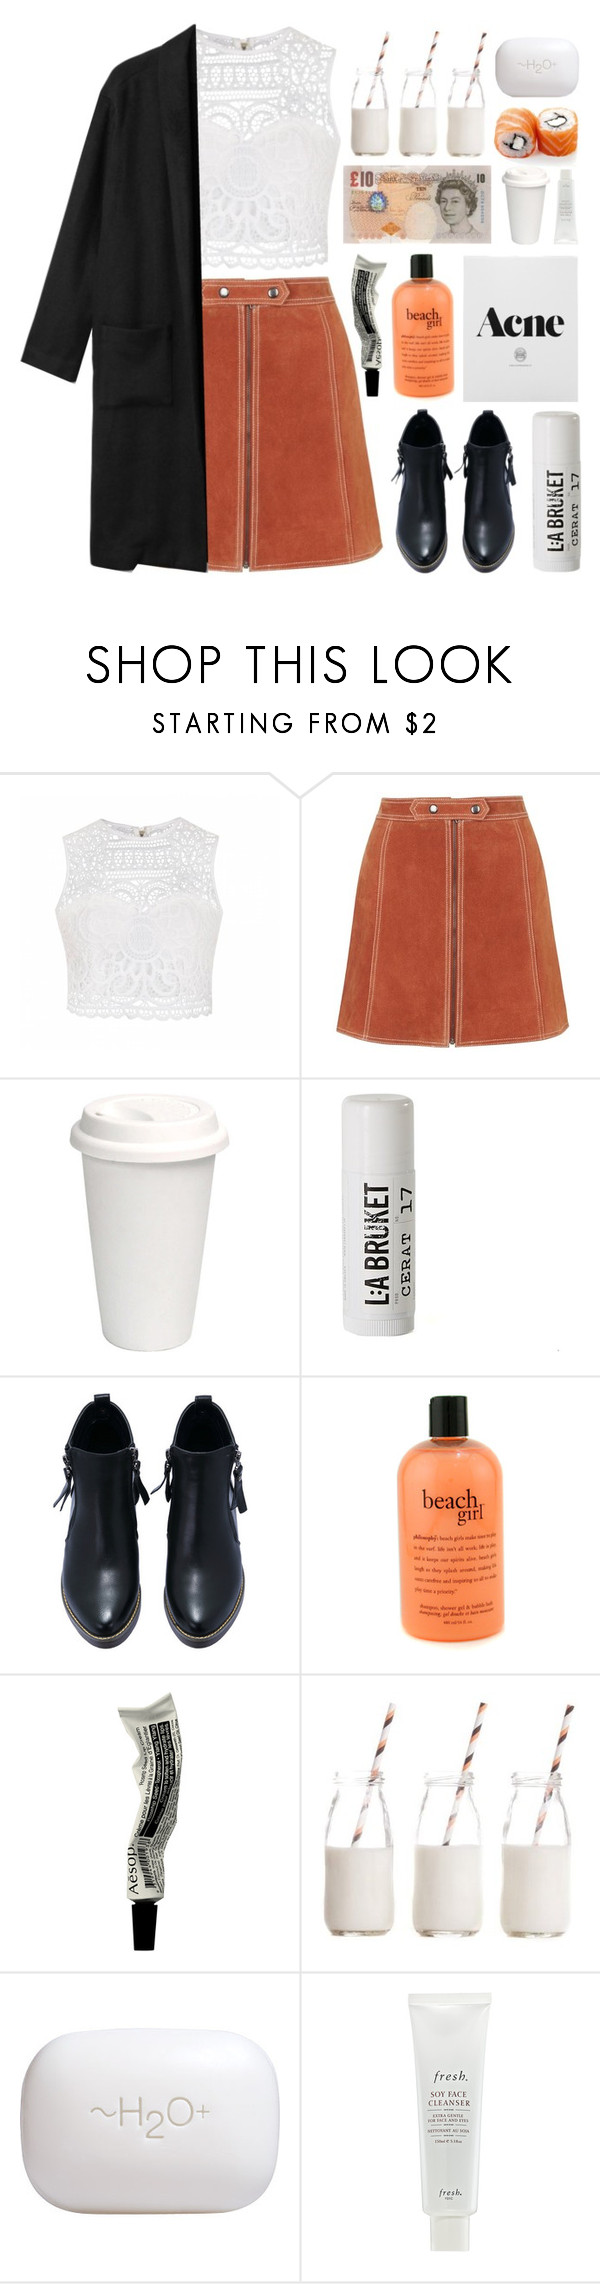 """Act like you know me, but you never will"" by pickiestpeach ❤ liked on Polyvore featuring Ally Fashion, Topshop, L:A Bruket, philosophy, Aesop, Dress My Cupcake, H2O+ and Fresh"